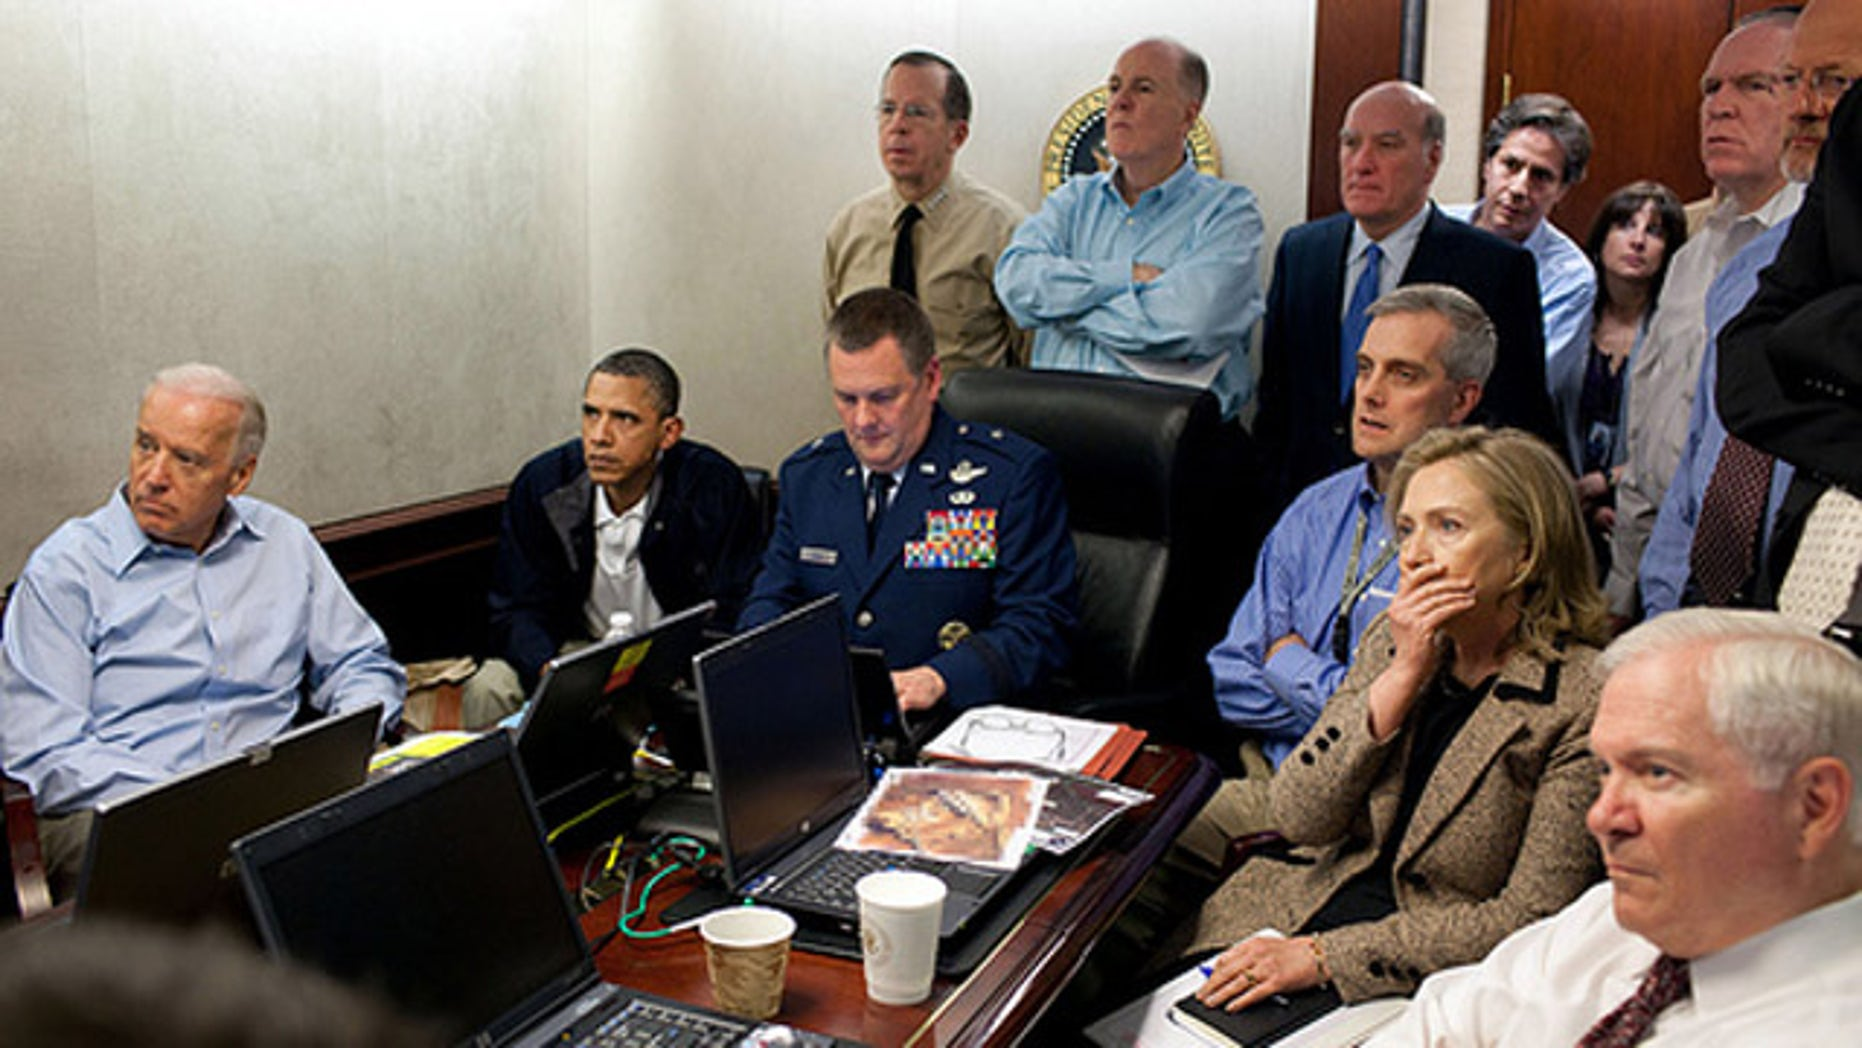 May 1, 2011: President Obama and his national security team monitor the operation which resulted in the killing of Usama bin Laden.